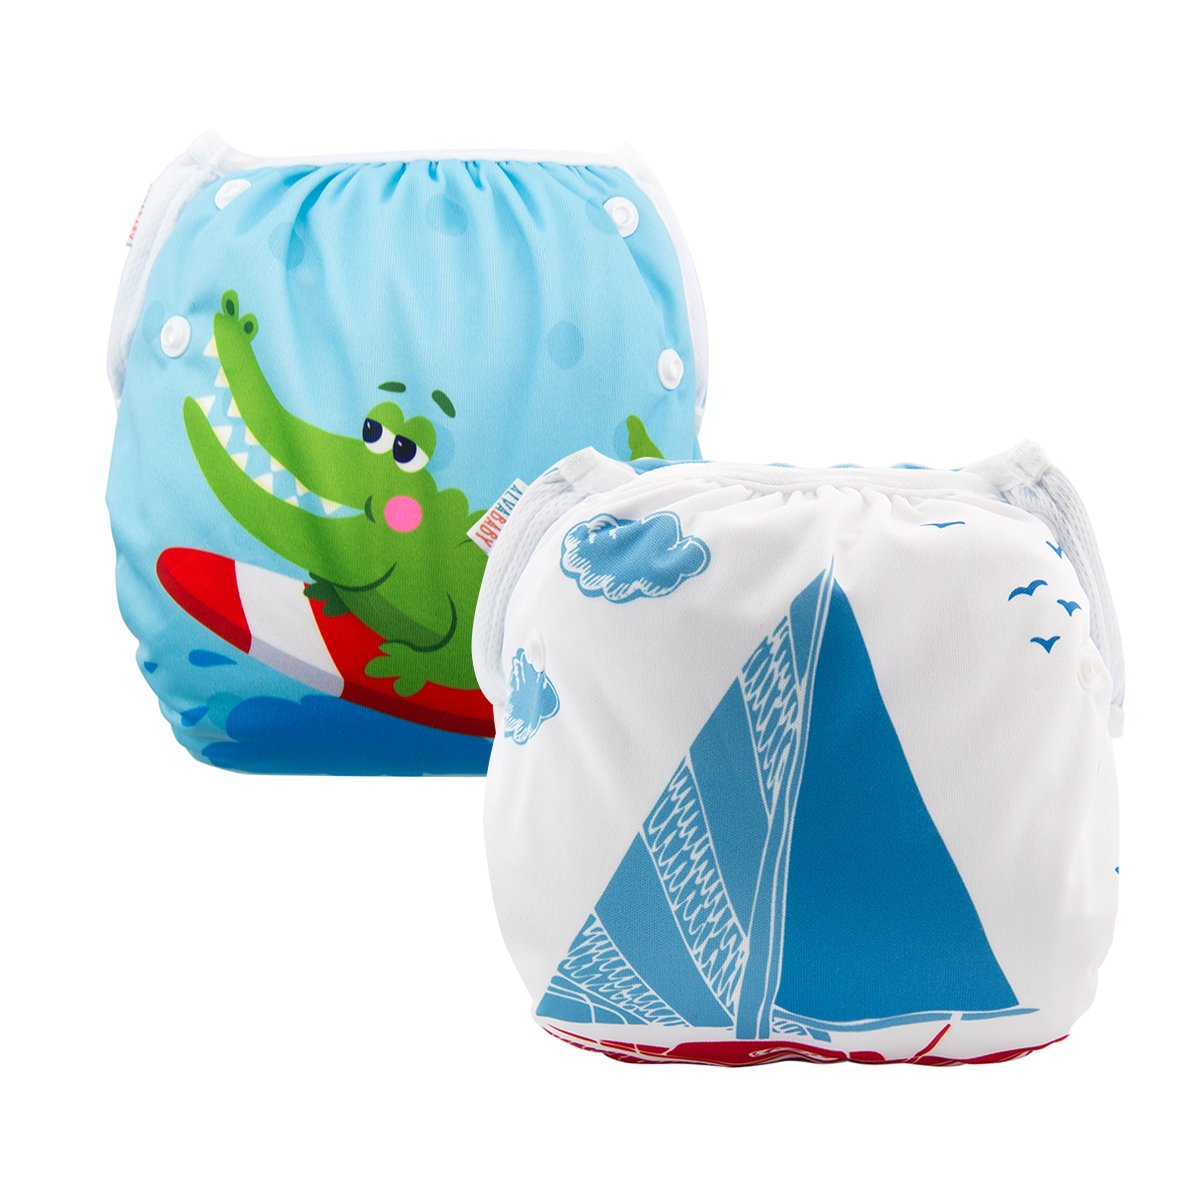 ALVABABY 2pcs Swim Diapers Reuseable Adjustable for Baby Gifts & Swimming Lessons SWB